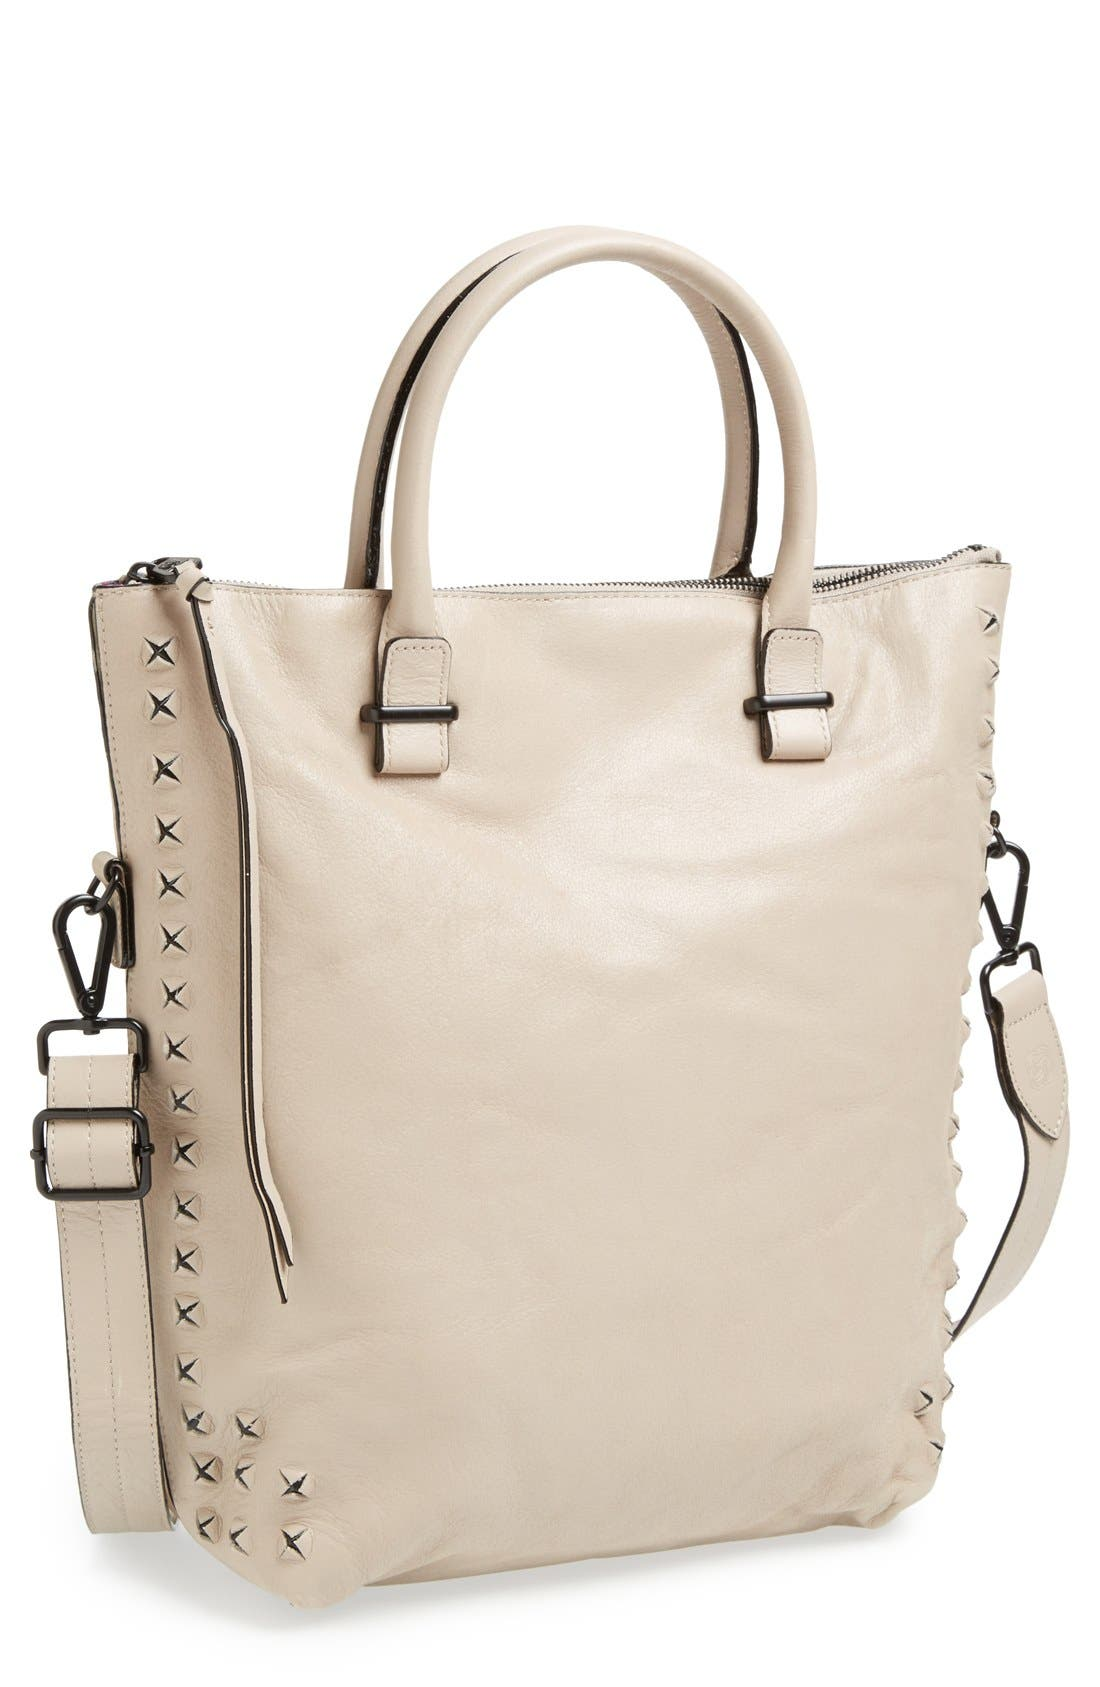 Alternate Image 1 Selected - Elliott Lucca 'Medium Maia' Leather Foldover Tote